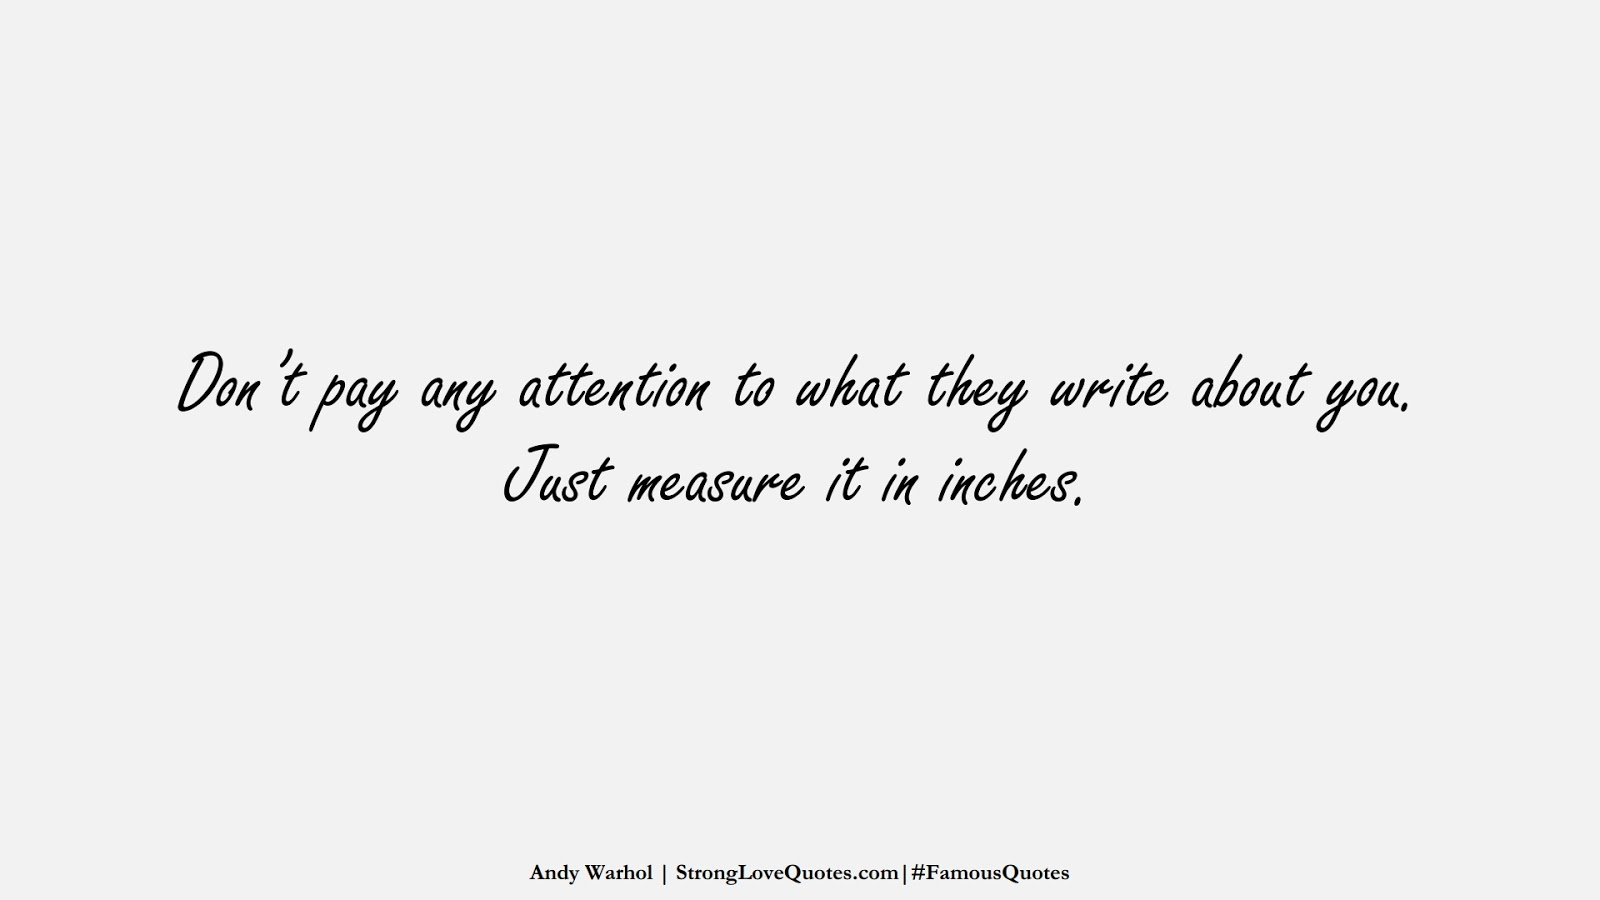 Don't pay any attention to what they write about you. Just measure it in inches. (Andy Warhol);  #FamousQuotes